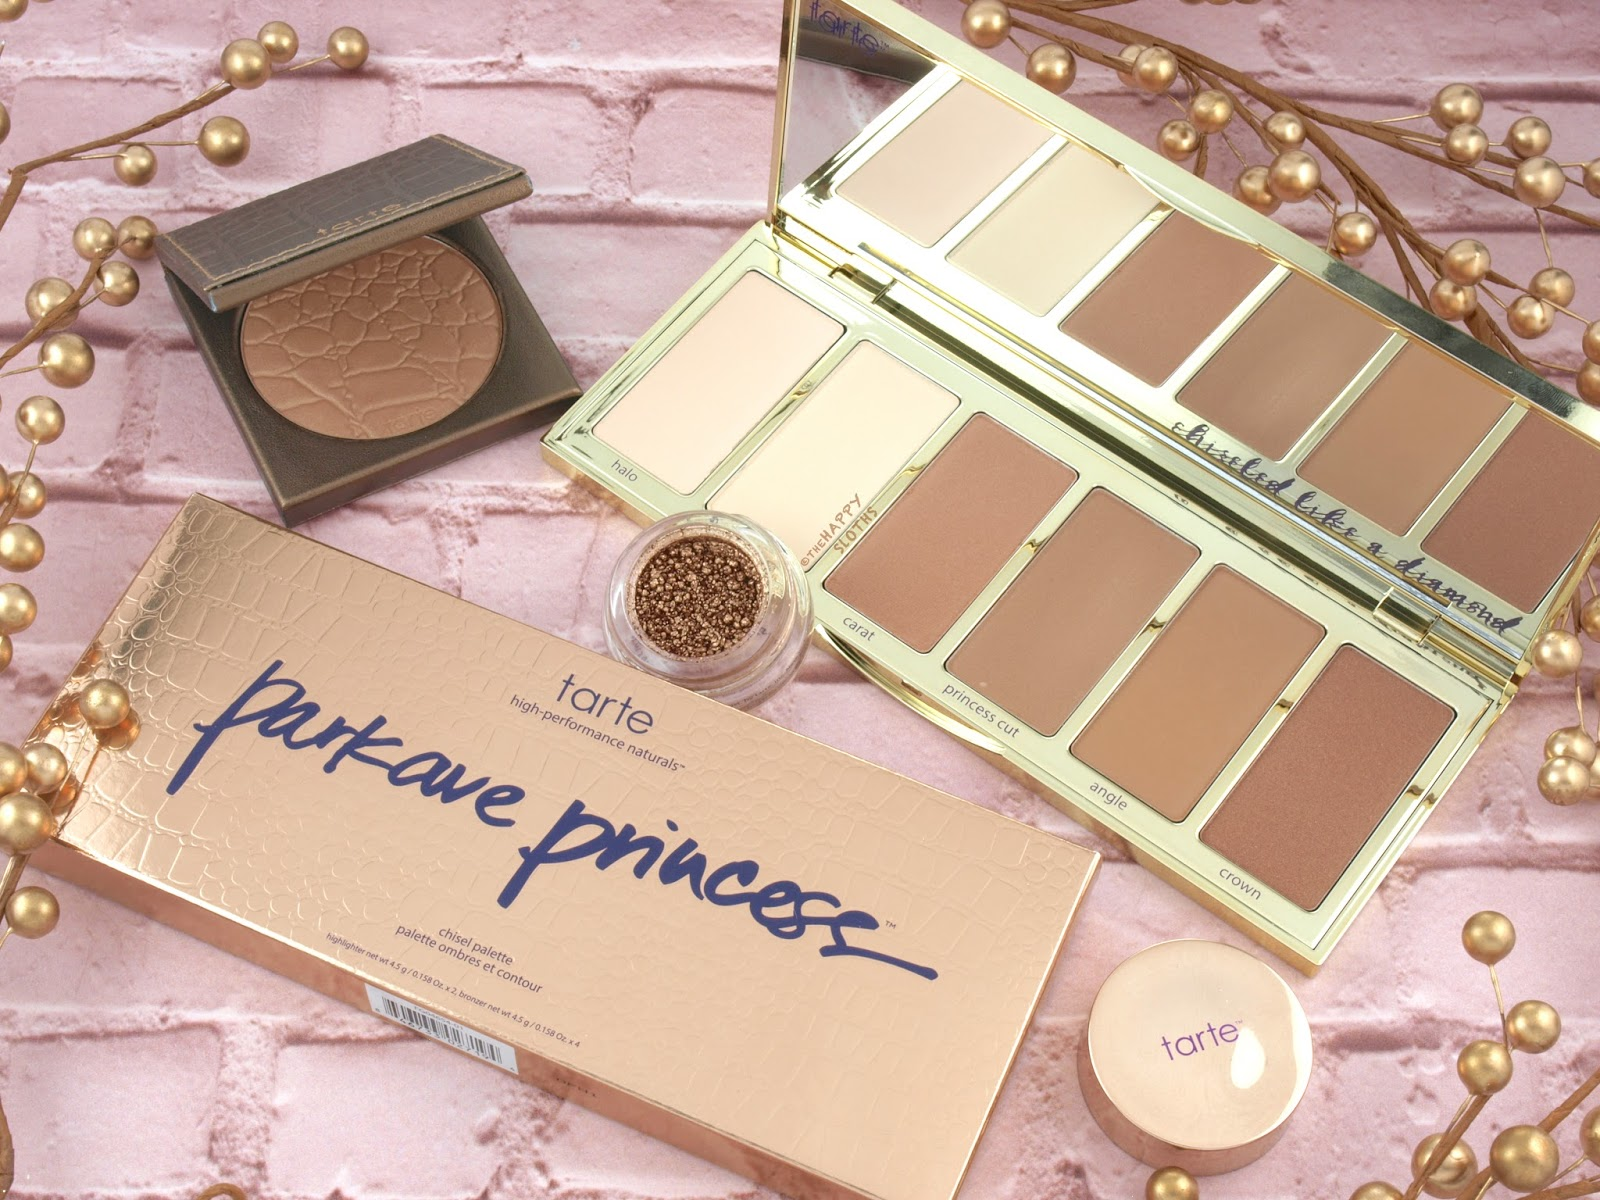 The_Happy_Sloths_Reviews_park_ave_princess_chisel_palette_From_Tarte_1.jpg